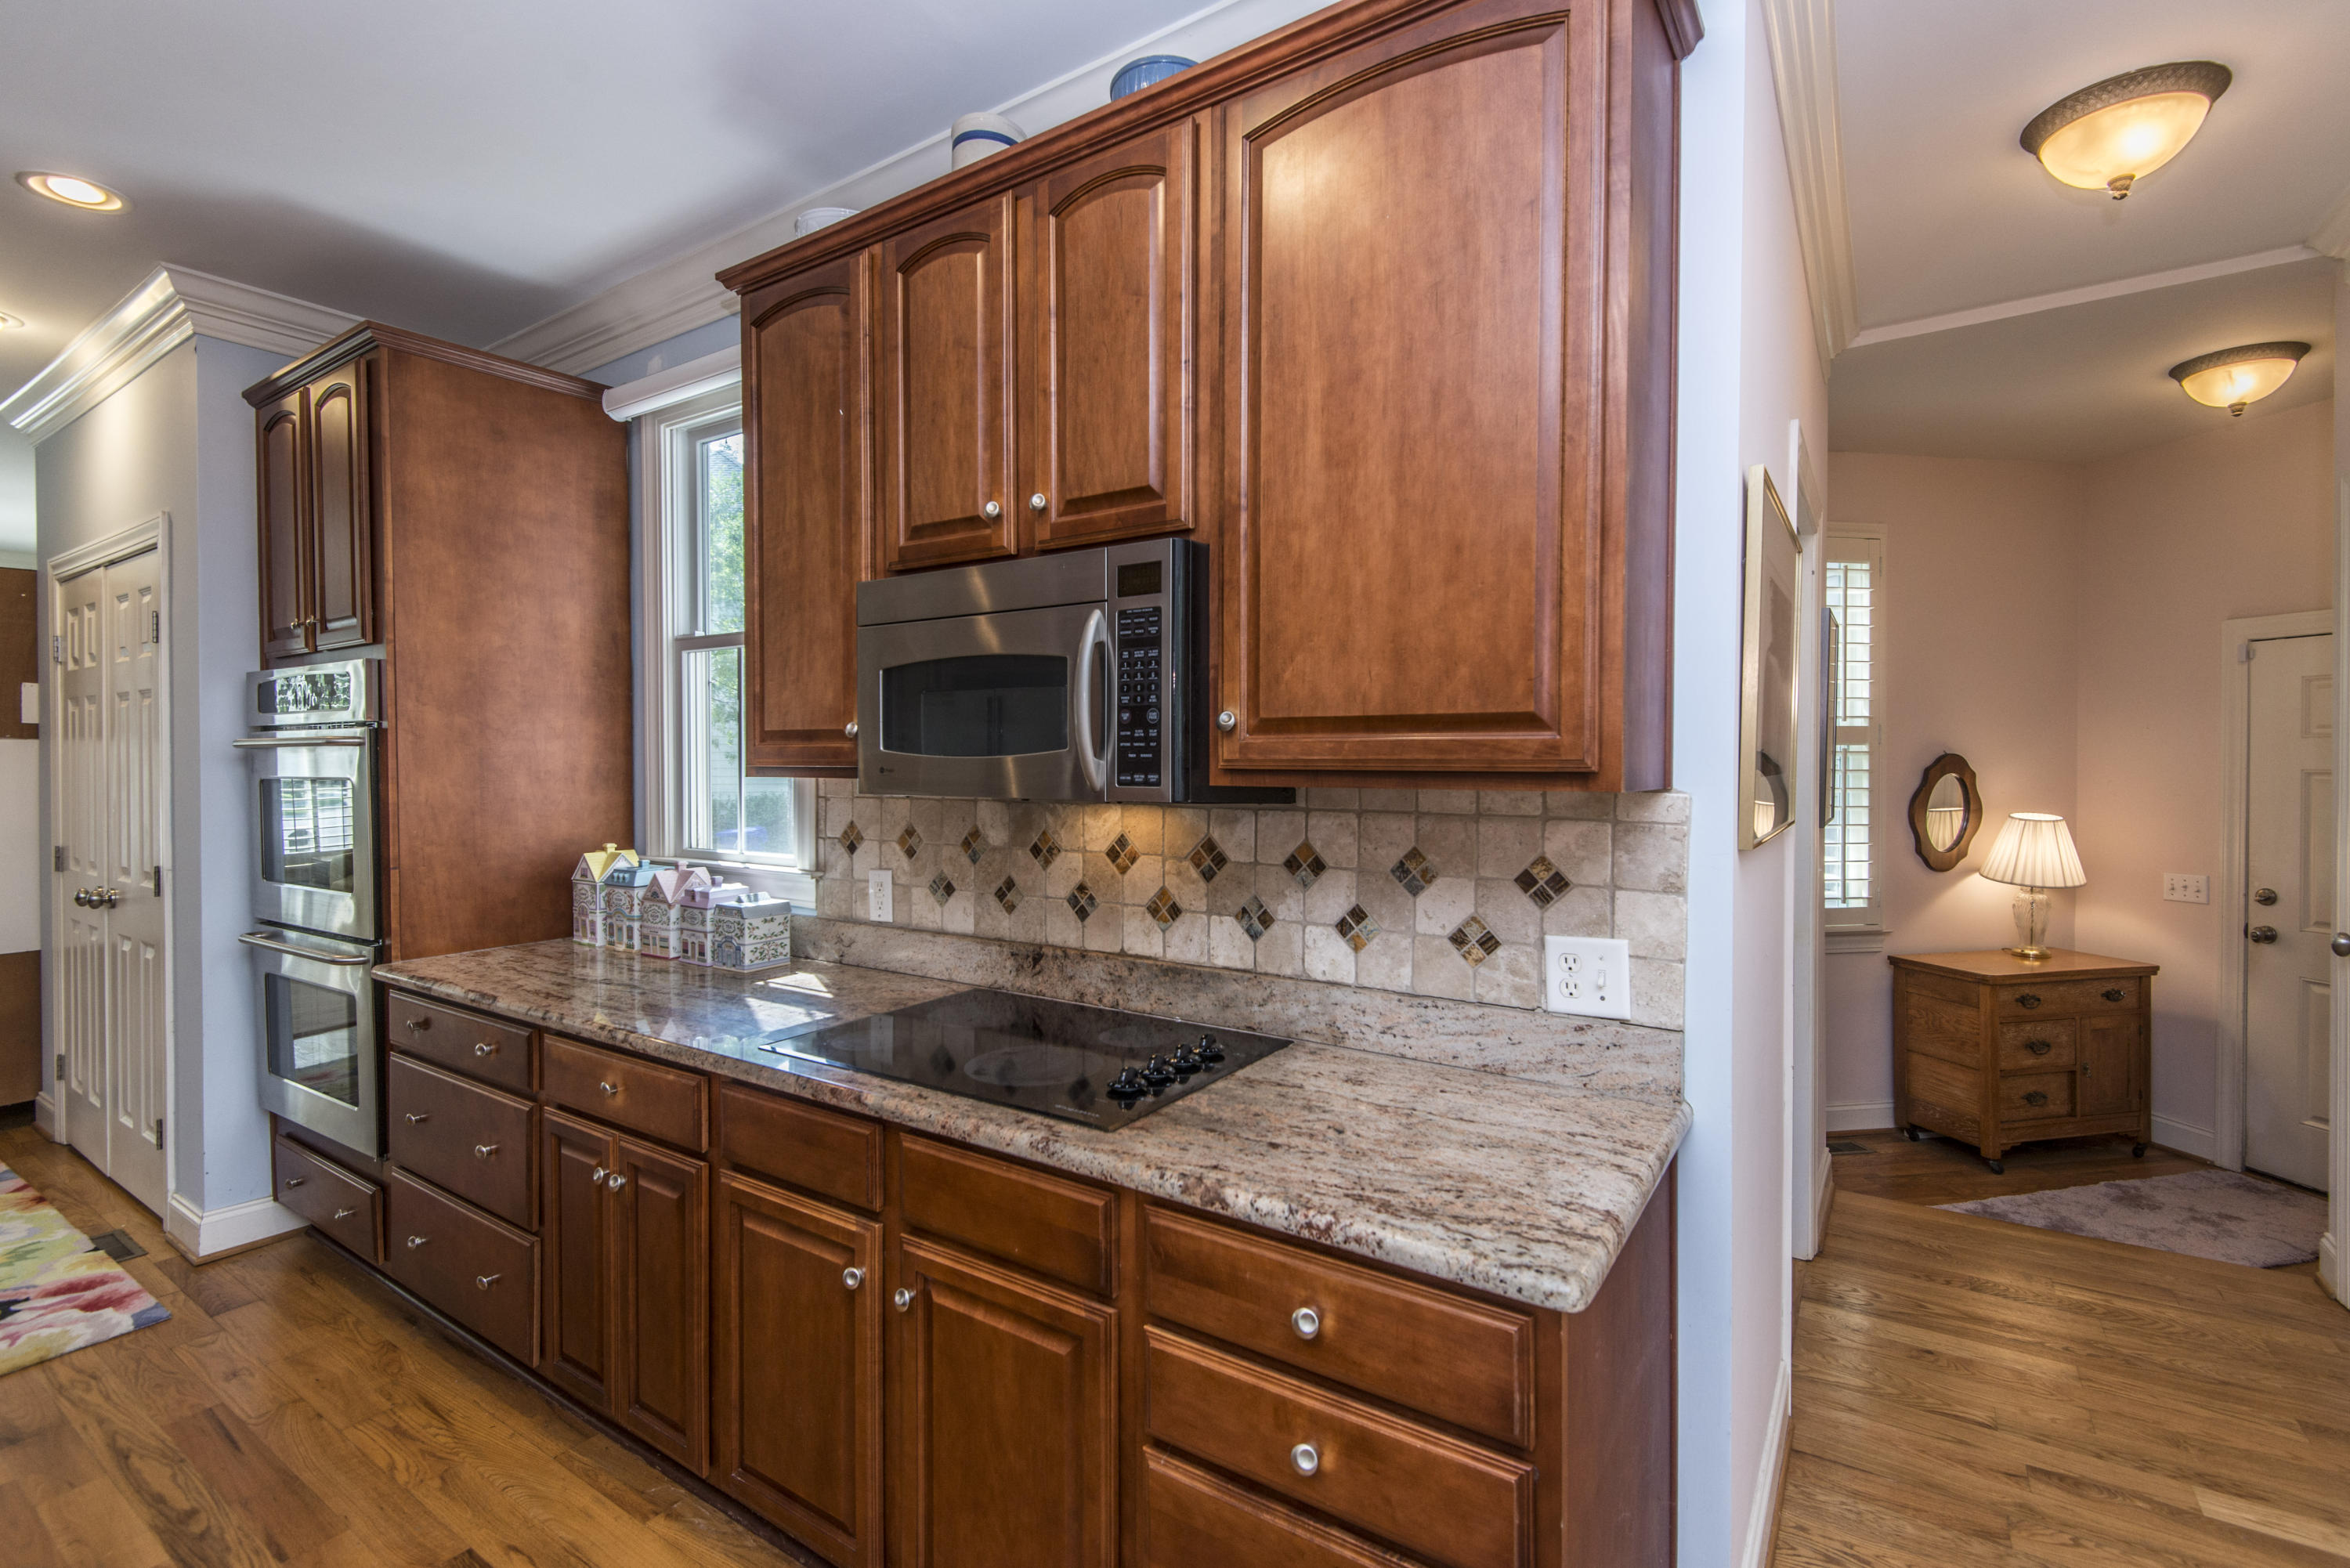 The Villages In St Johns Woods Homes For Sale - 4087 Amy, Johns Island, SC - 8